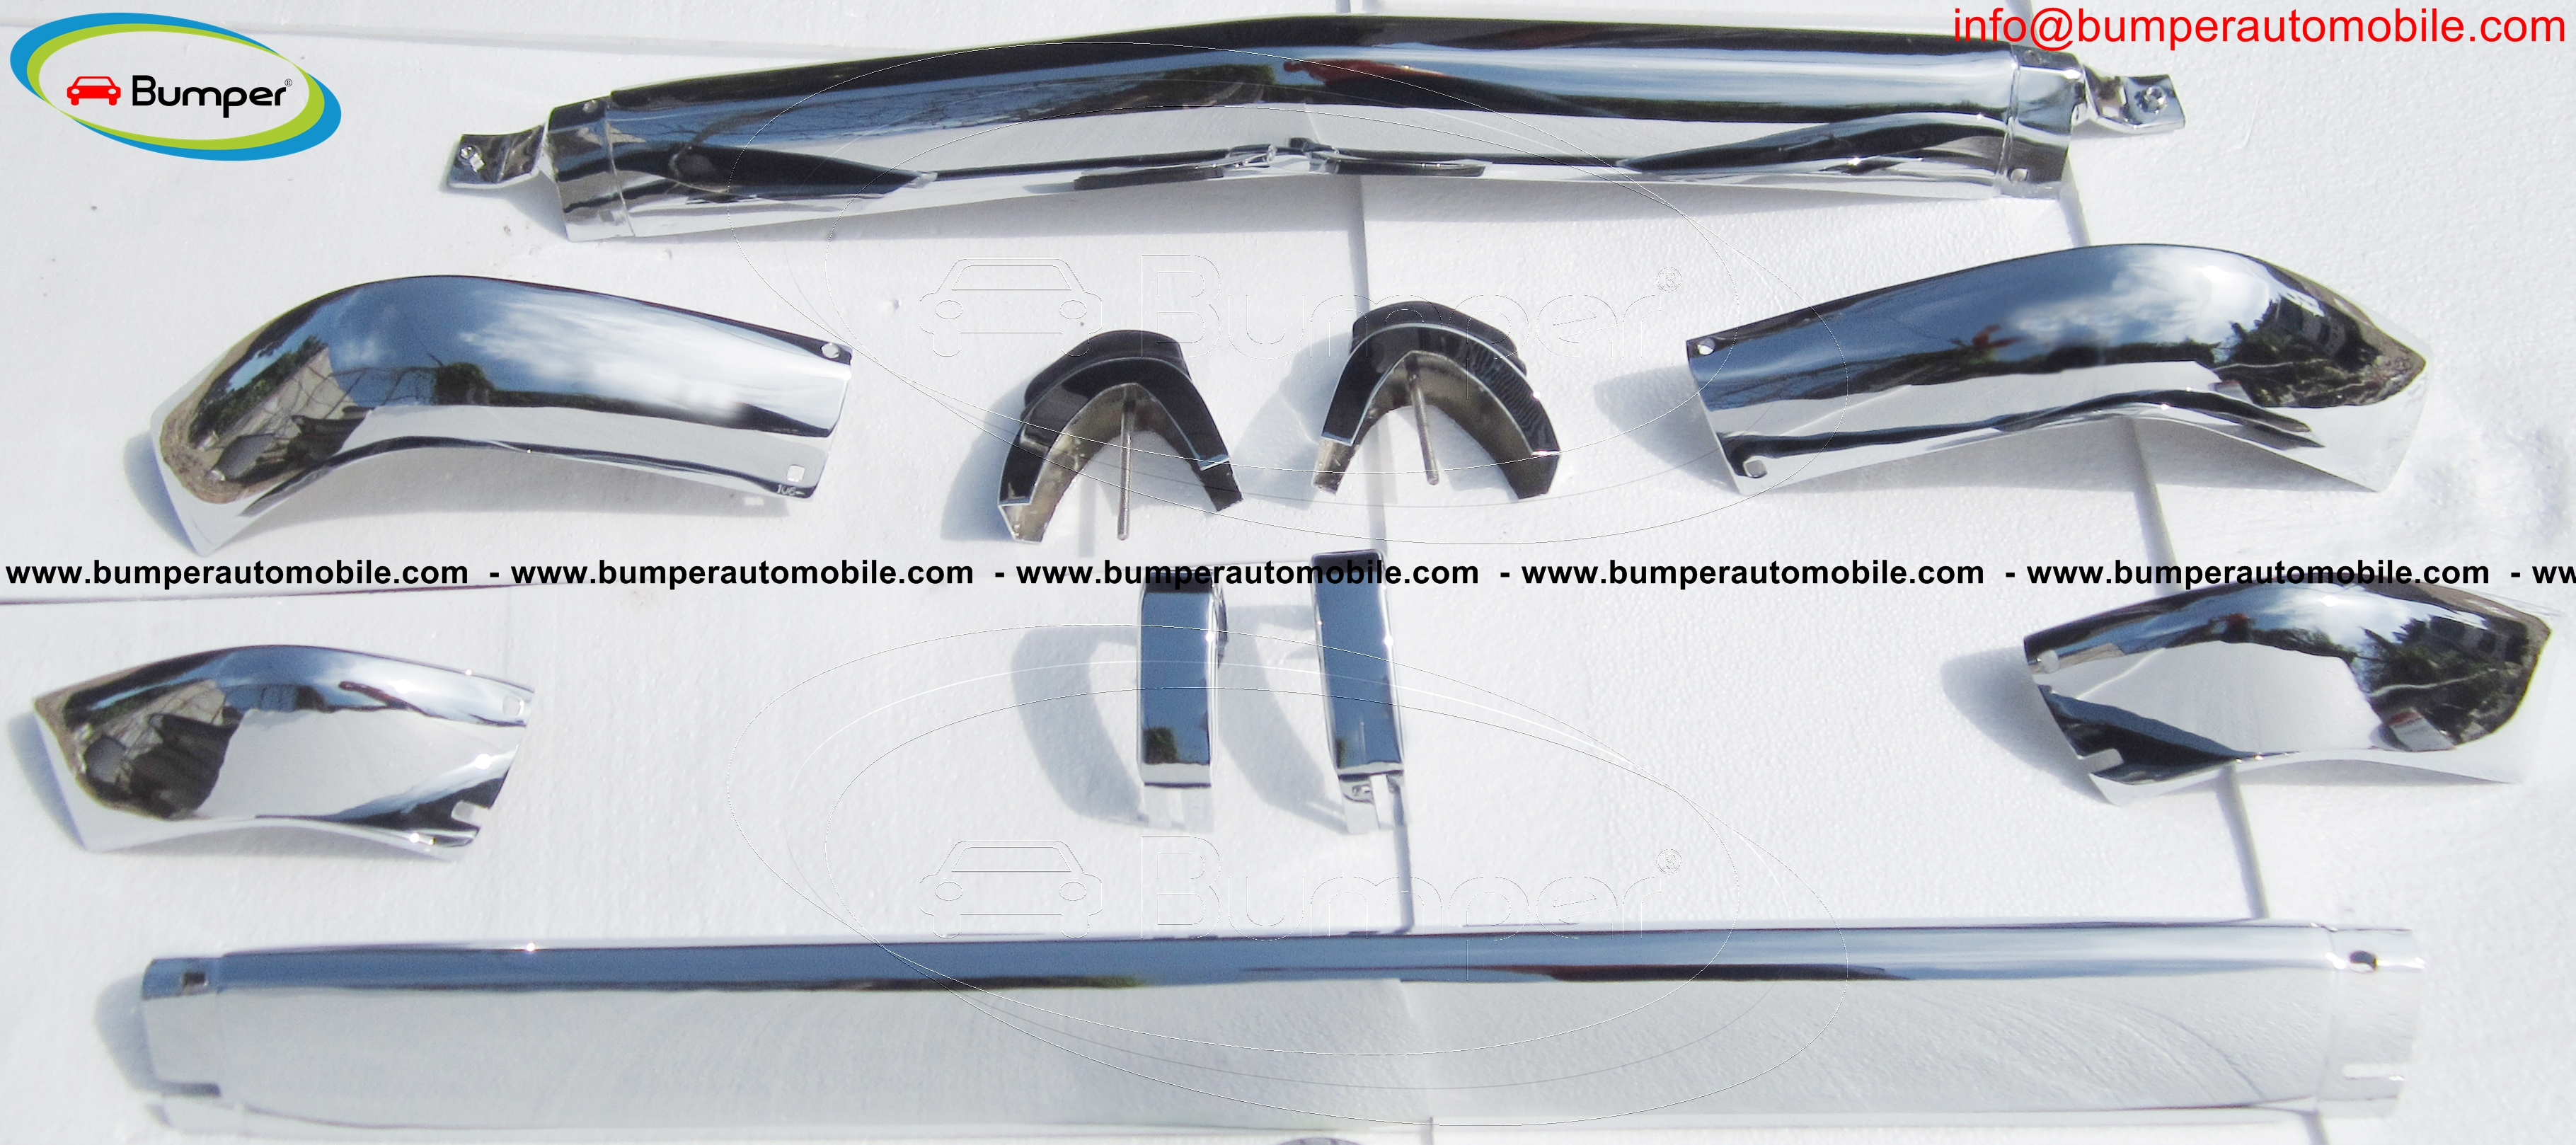 BMW 2002 bumper in stainless steel